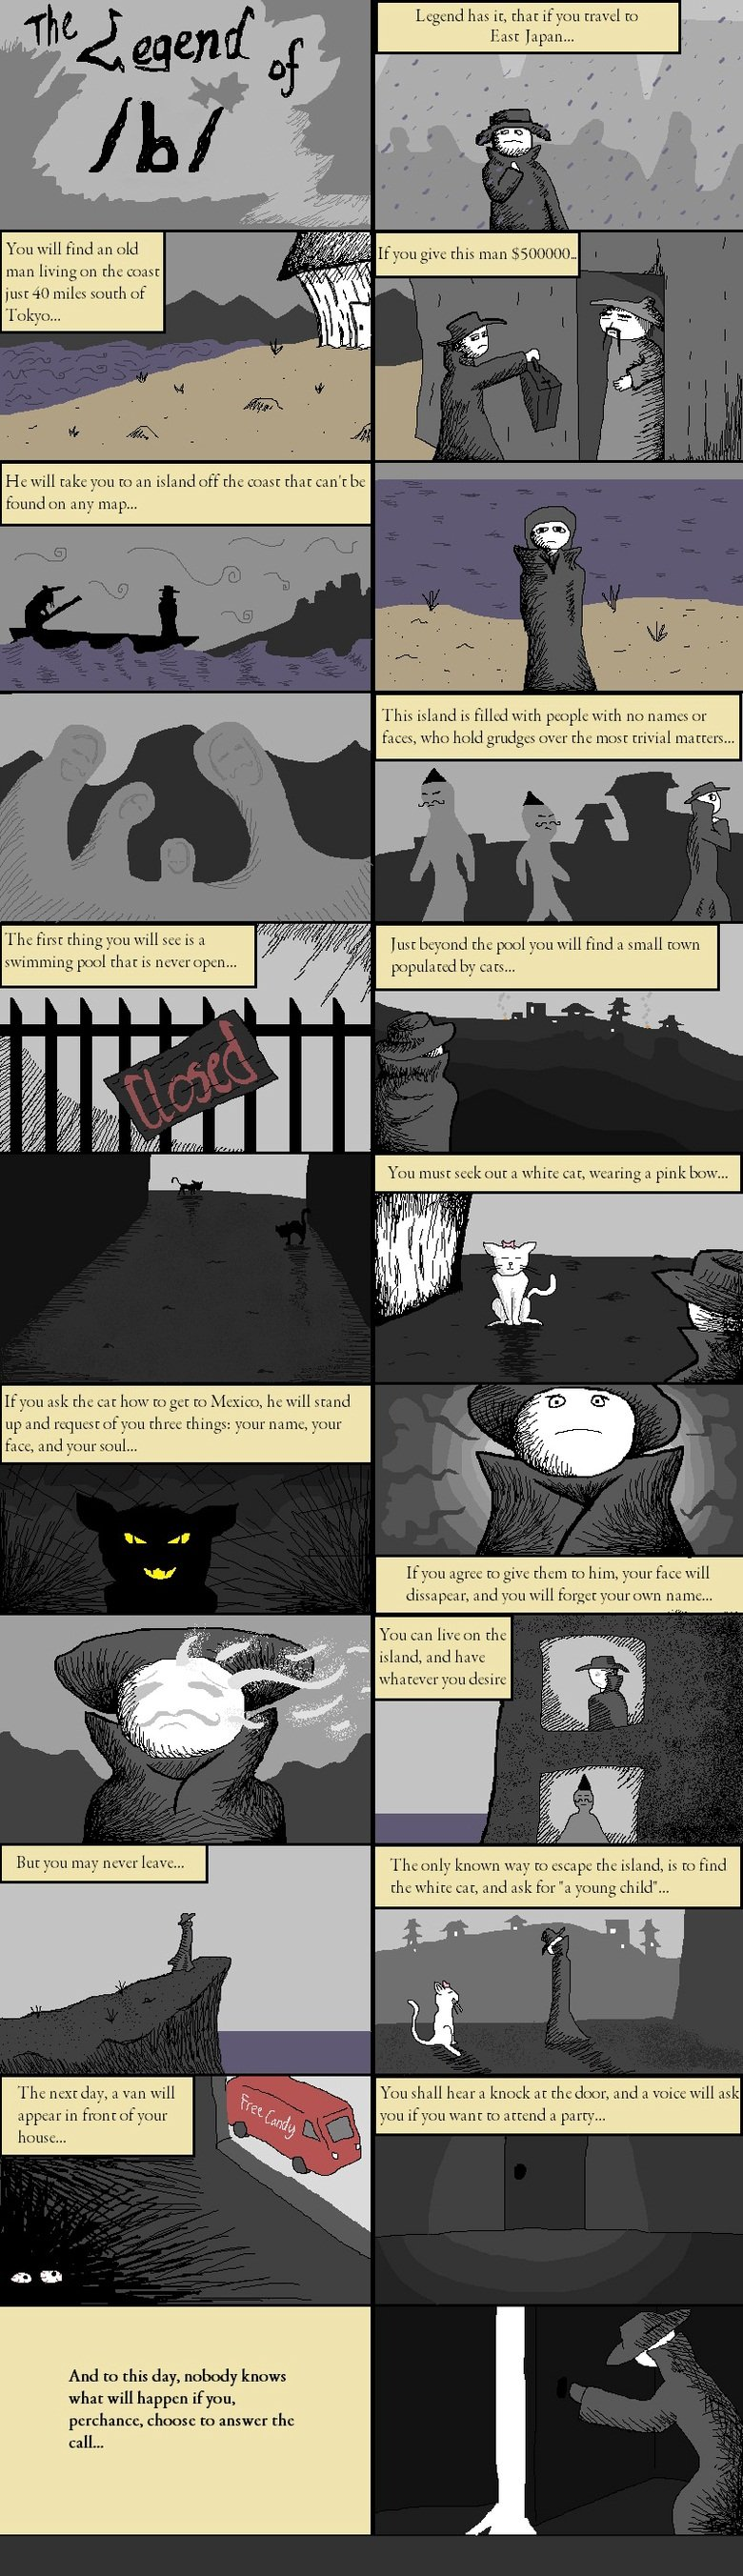 Legend of b. this is the ORIGINAL of the legend of funnyjunk comic it was posted on the /r9k/ board by some drawfag well enjoy :].. sigh, repost. its #1 on frontpage at the moment